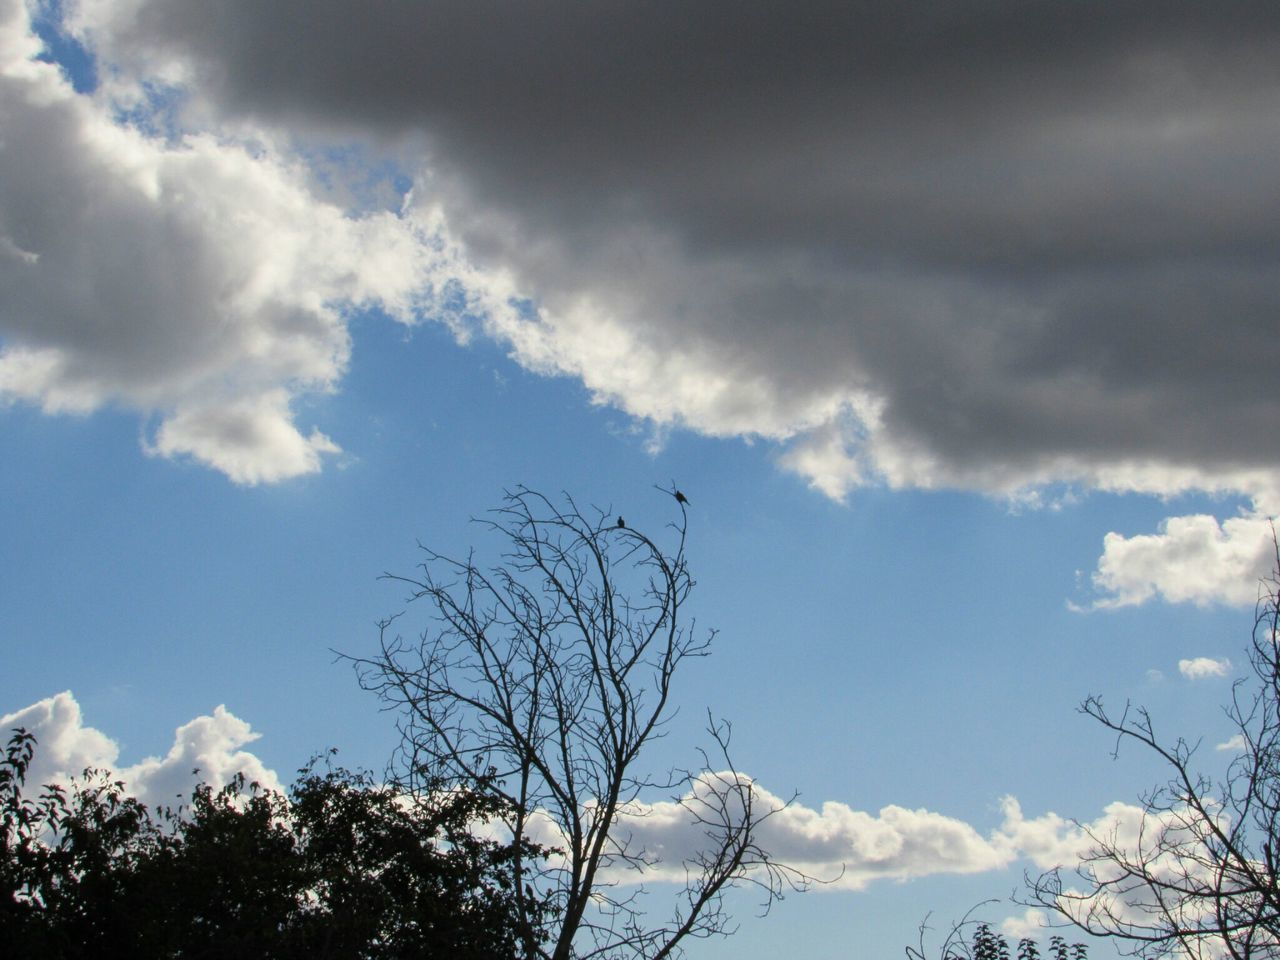 sky, low angle view, cloud - sky, tree, day, nature, bare tree, beauty in nature, no people, outdoors, branch, animal themes